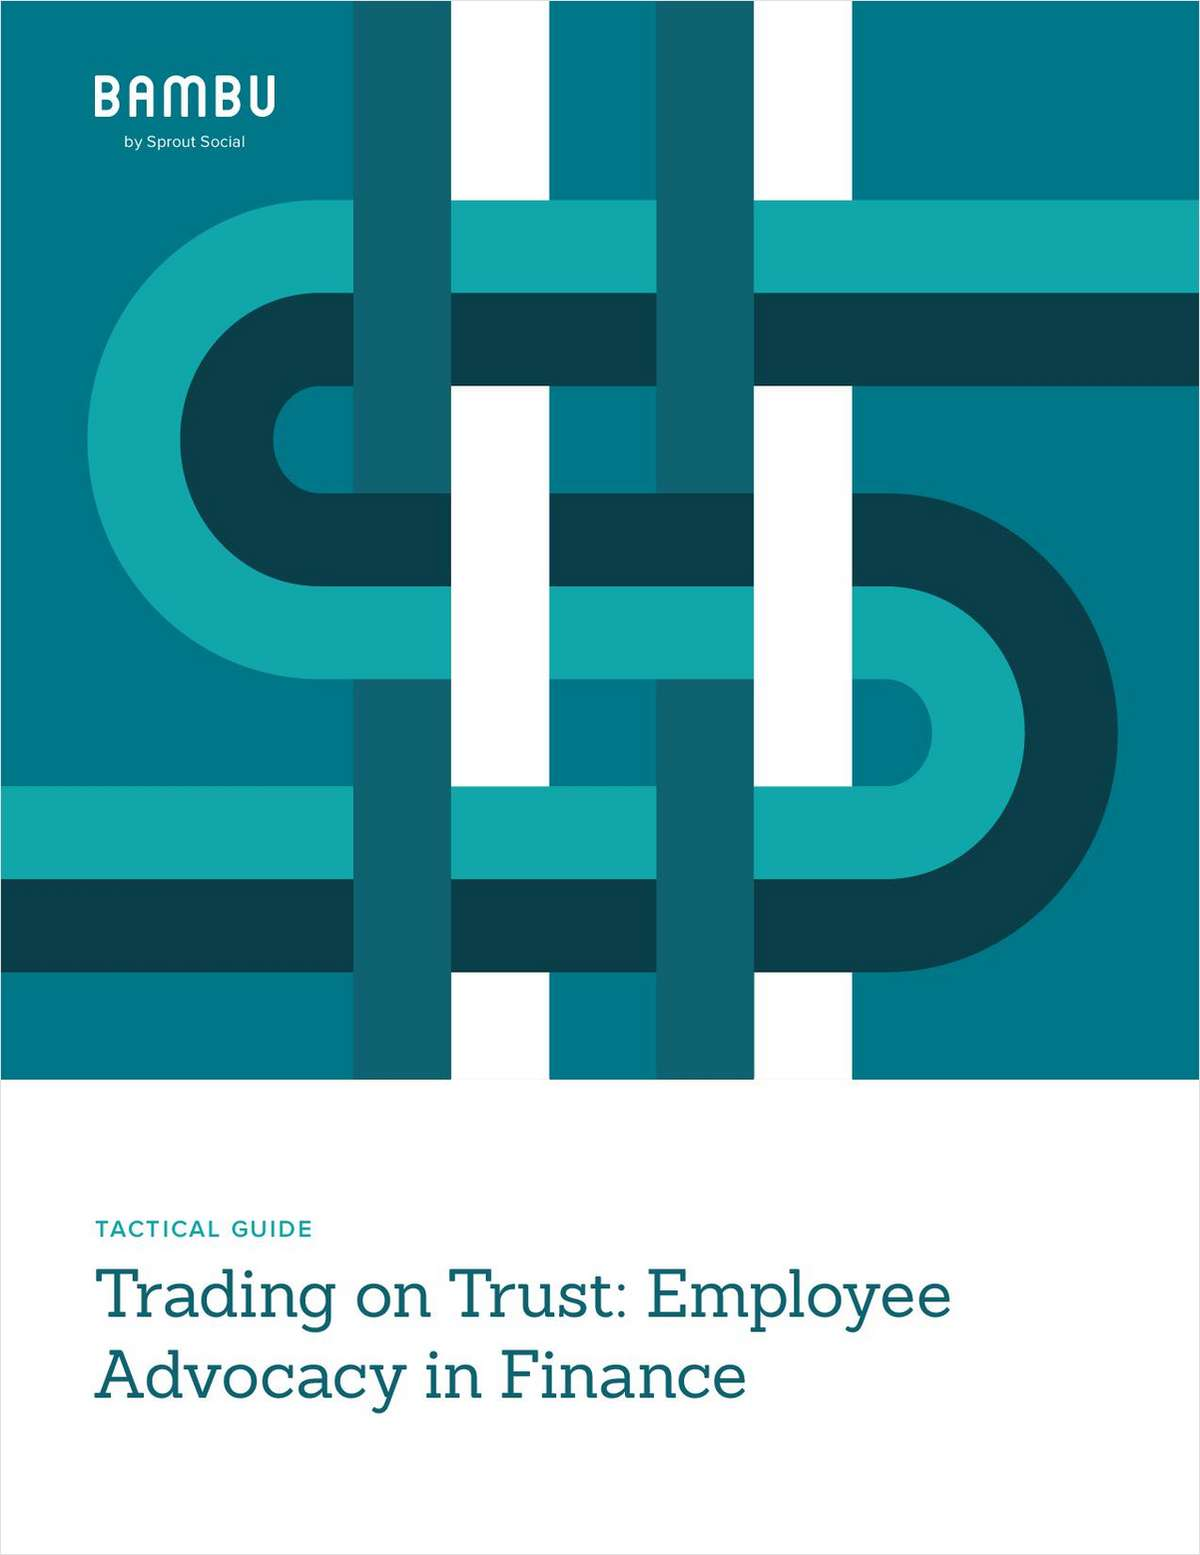 Trading on Trust: Employee Advocacy in Finance